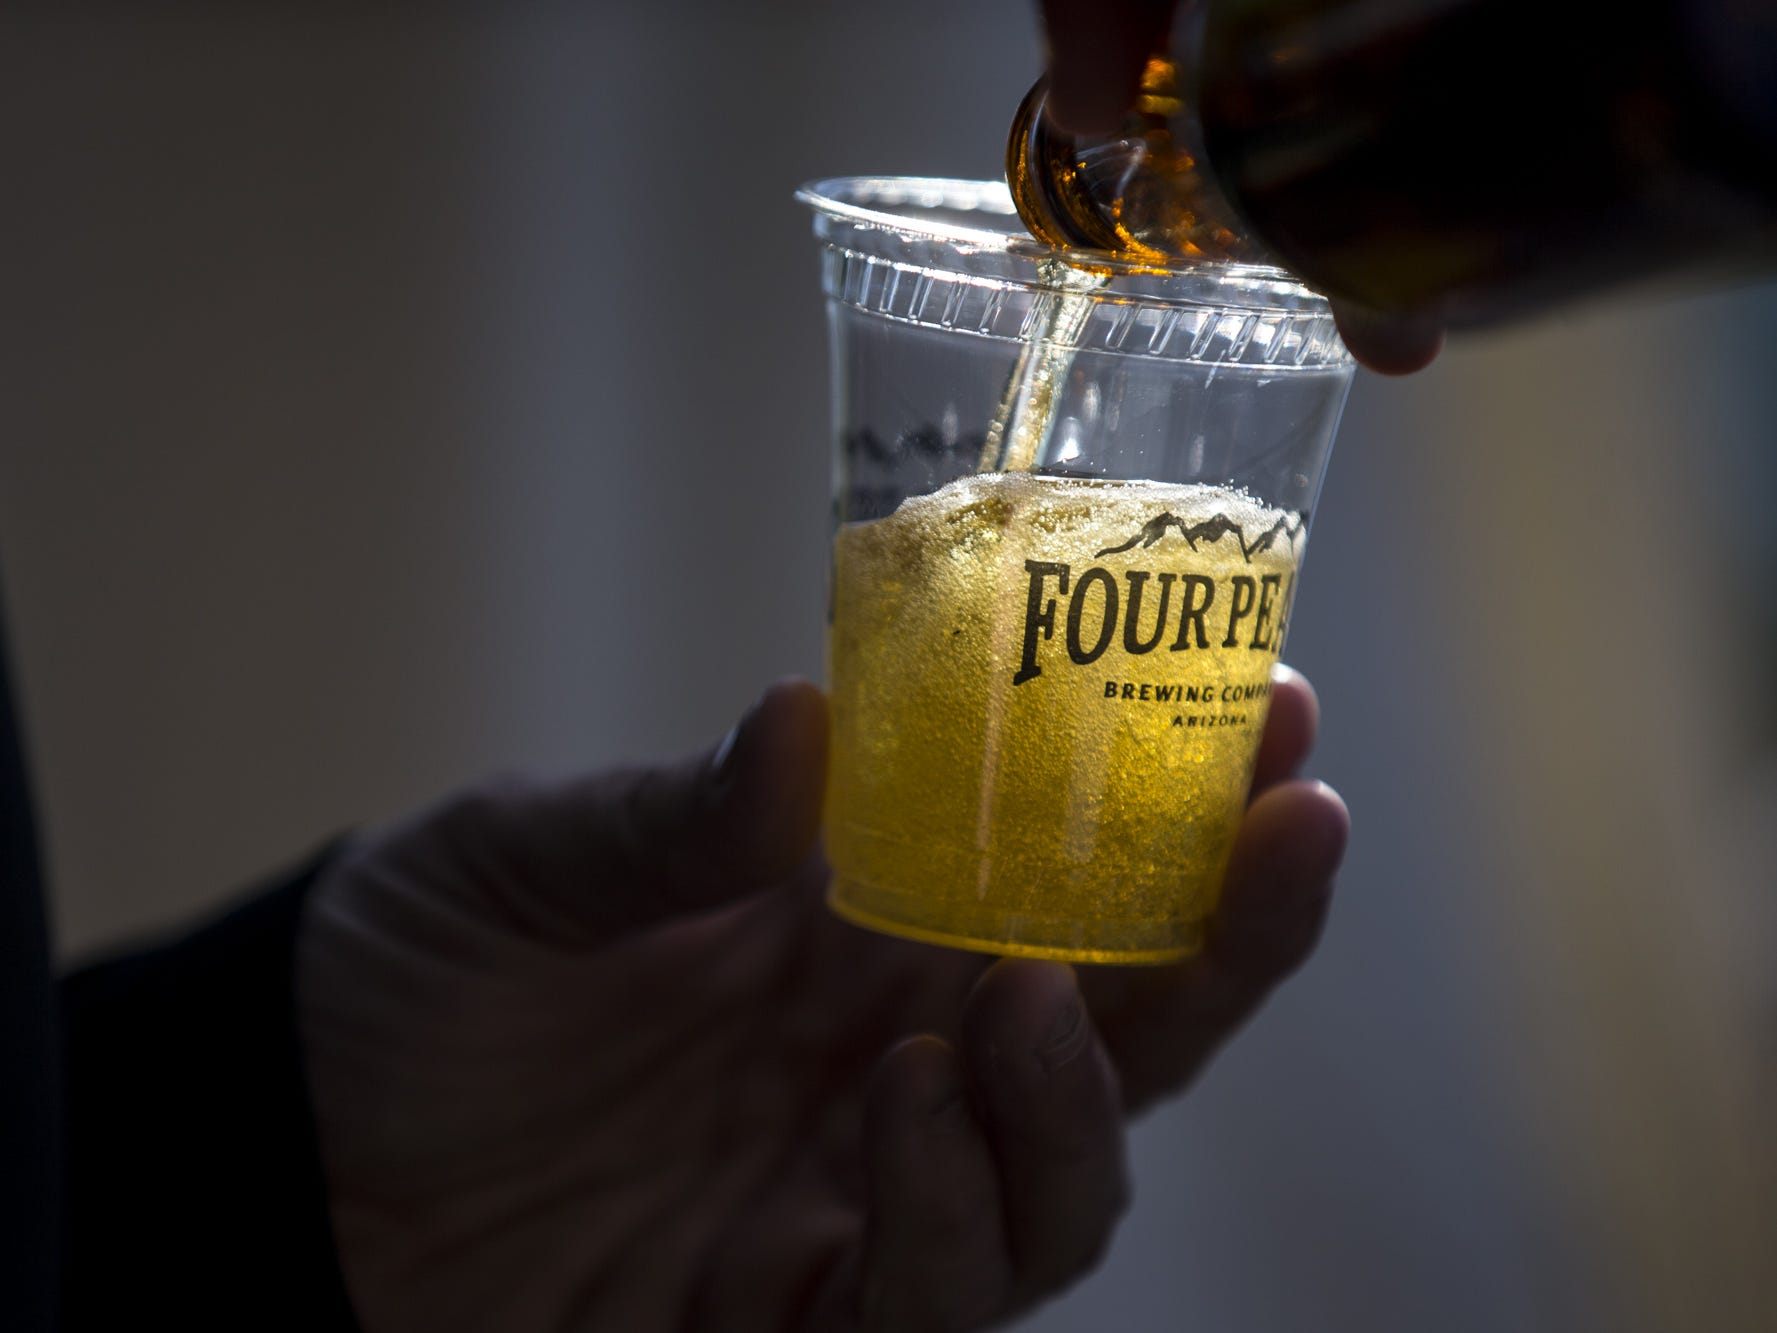 Jon Schmidt of Four Peaks Brewing pours a beer sample during Day 1 of the Devour Culinary Classic on Saturday, Feb. 23, 2019, at Desert Botanical Garden in Phoenix.